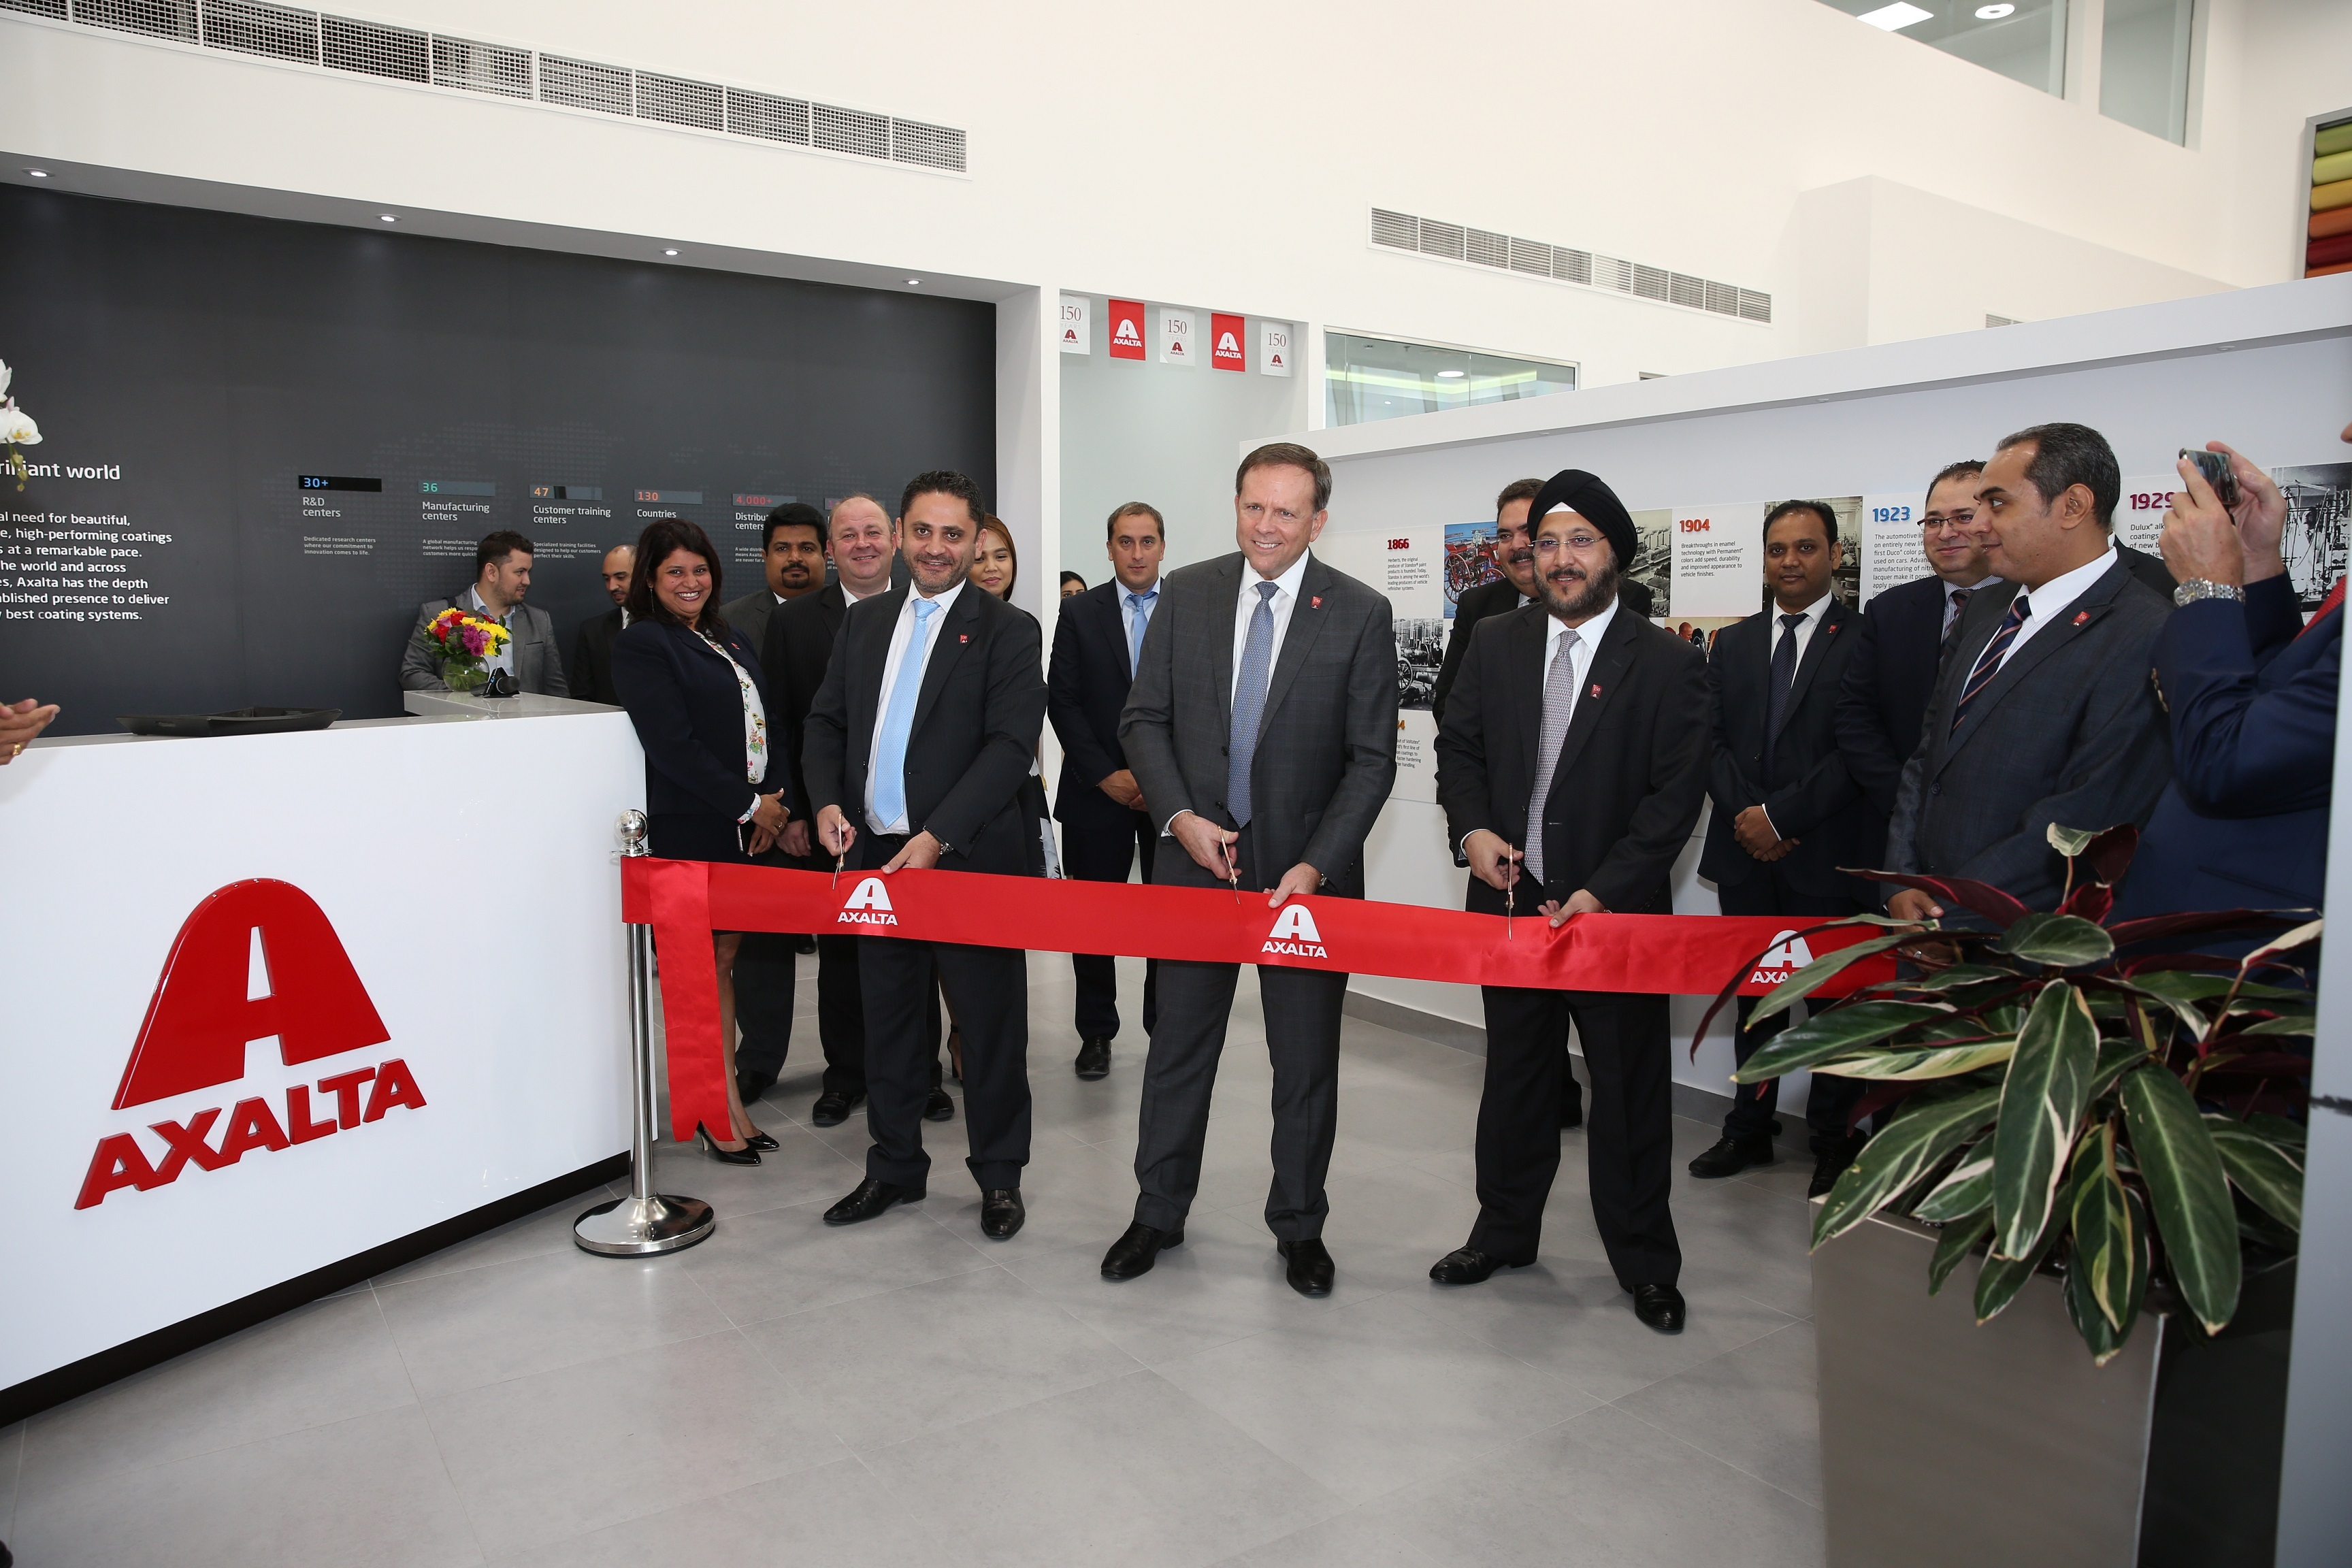 Charlie Shaver, Axalta Chairman and CEO (center), Sobers Sethi, Axalta Vice President, South and East Asia and Middle East and North Africa (MENA) Region (right), and Fadi Medlej, Axalta Managing Director of MENA (left) and others open Axalta MENA Regional Office in Dubai (Photo: Axalta)